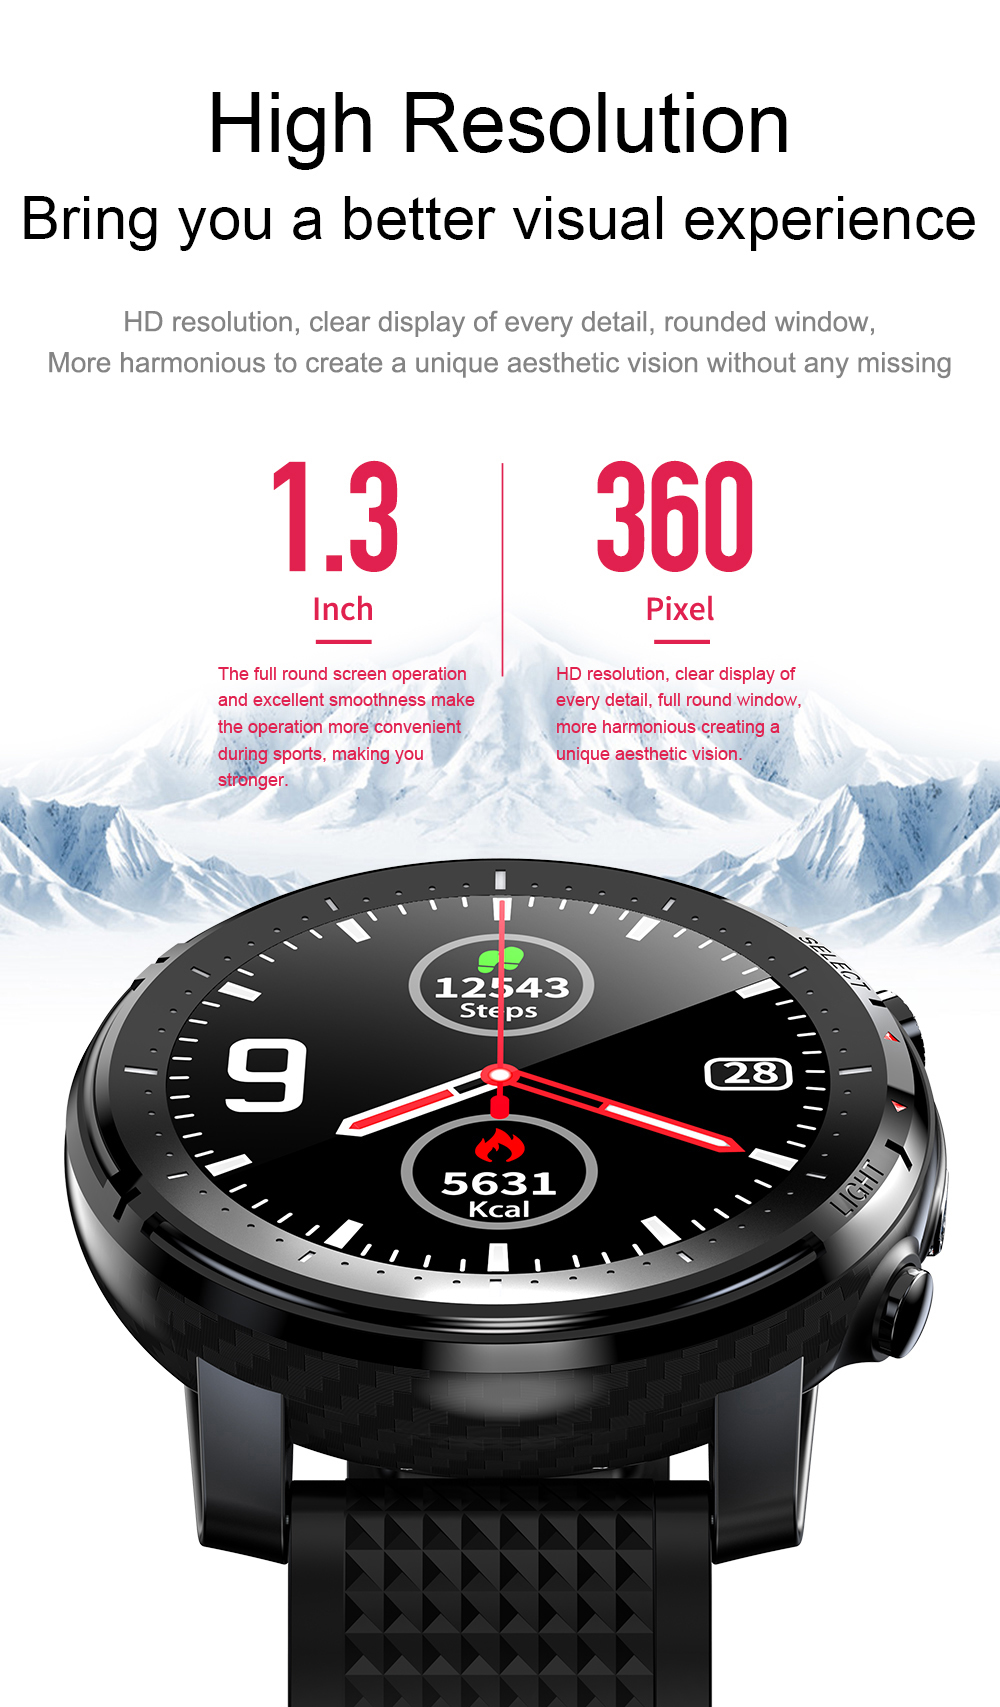 2020 New HERALL Smart Watch Men Women Smartwatch ECG Heart Rate Blood Pressure Monitor Sport Waterproof Watches For Android iOS